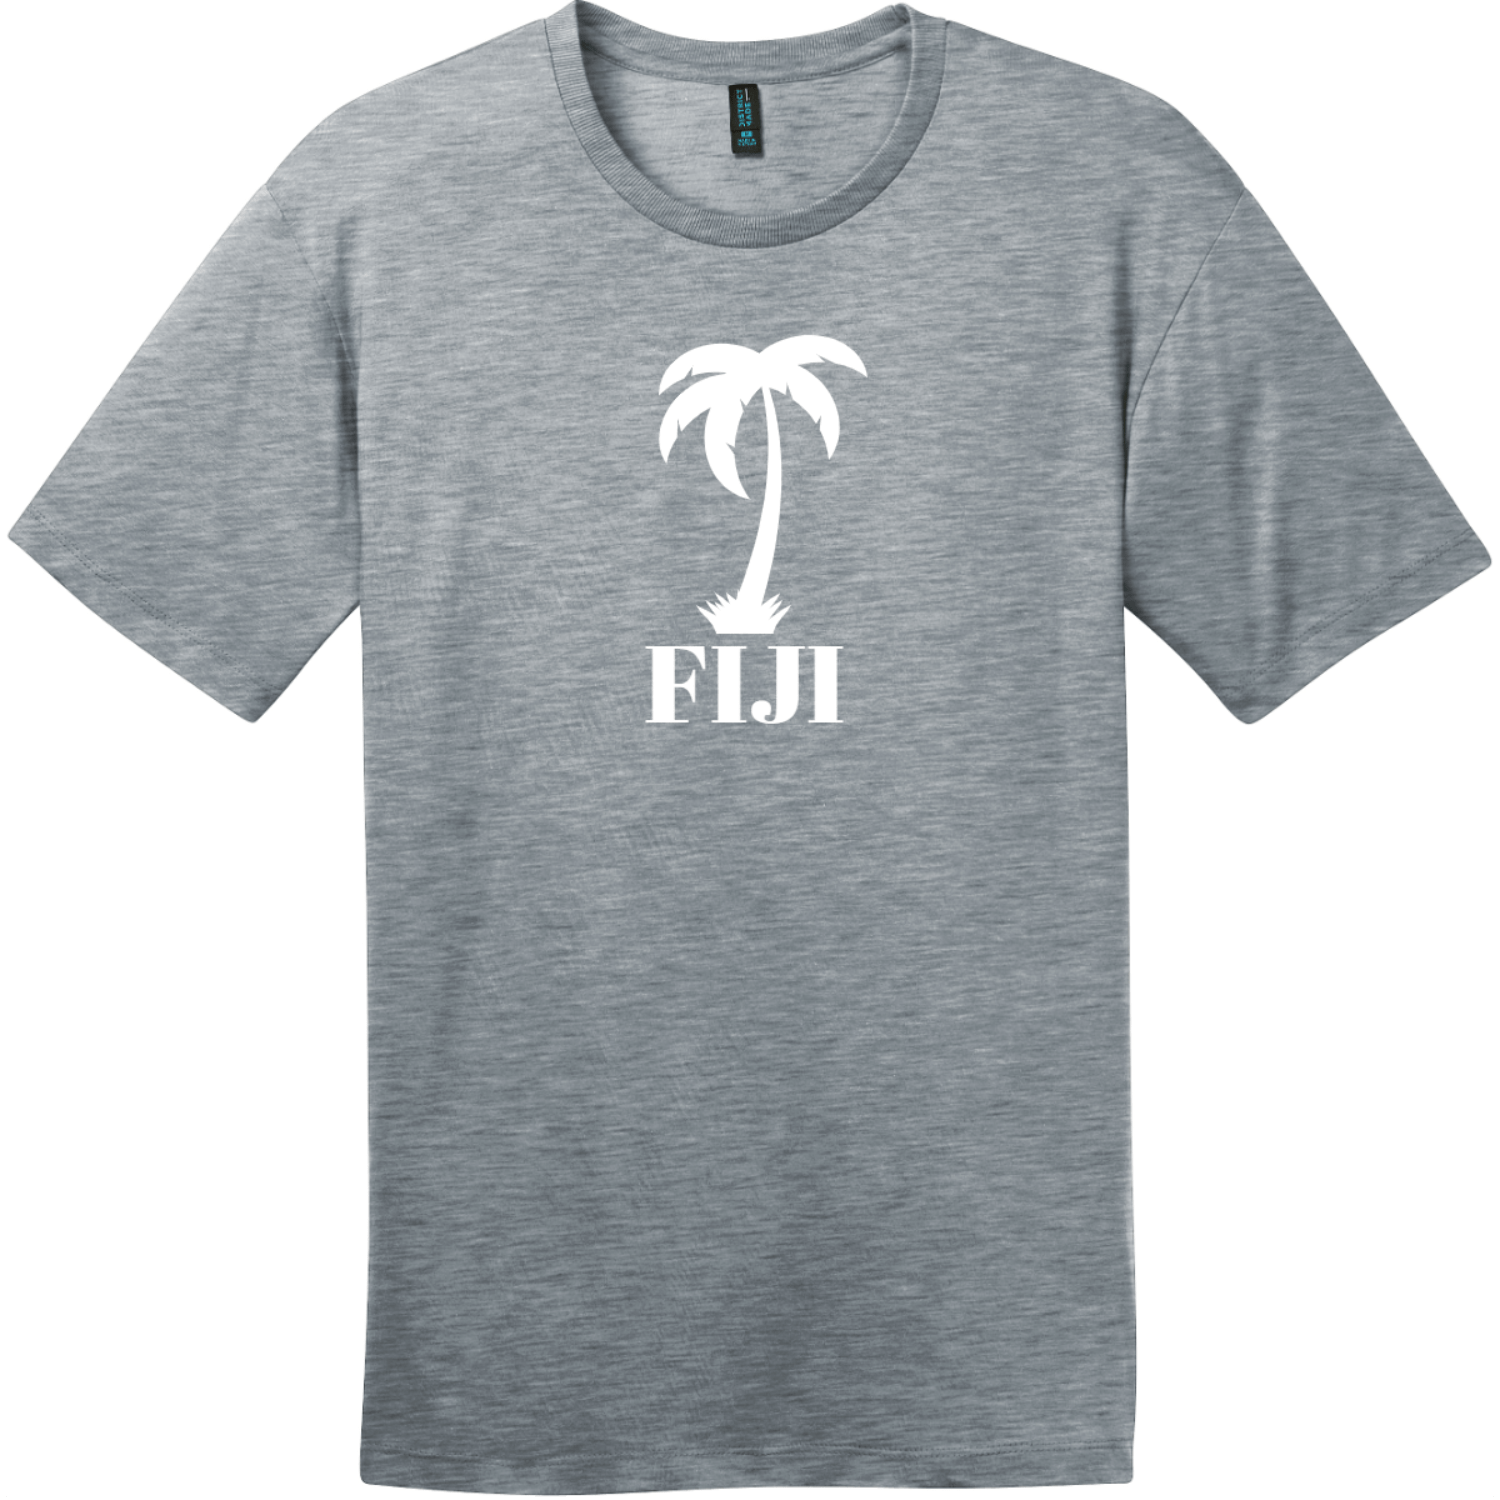 Fiji Palm Tree T-Shirt Heathered Steel District Perfect Weight Tee DT104